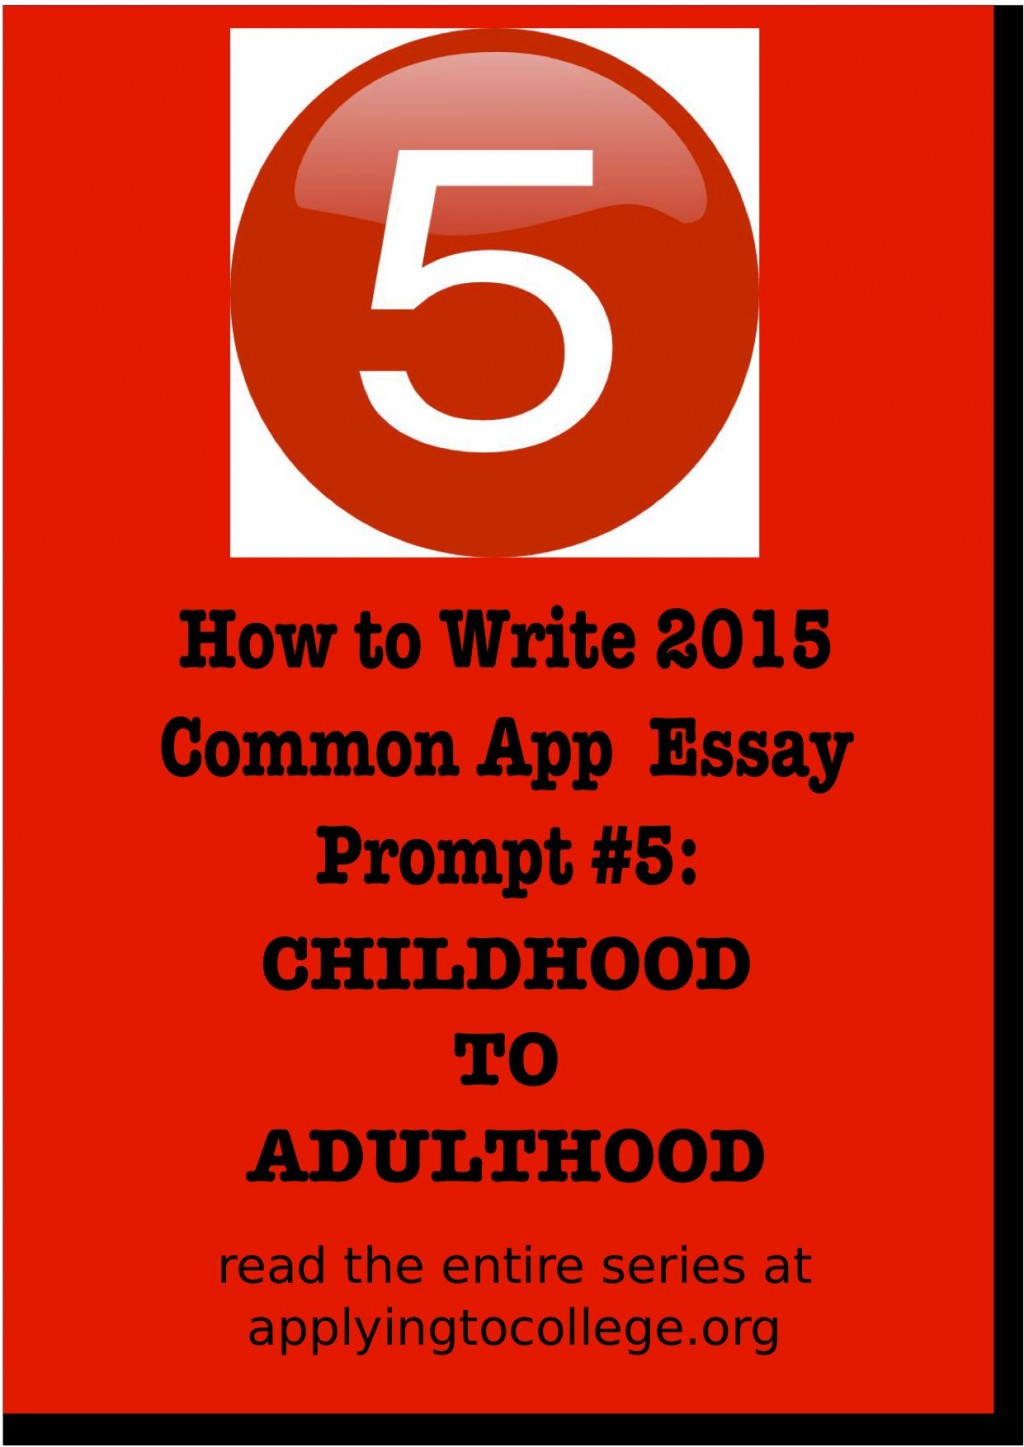 014 Essay Example Common Application Prompts Surprising 2015 App Large